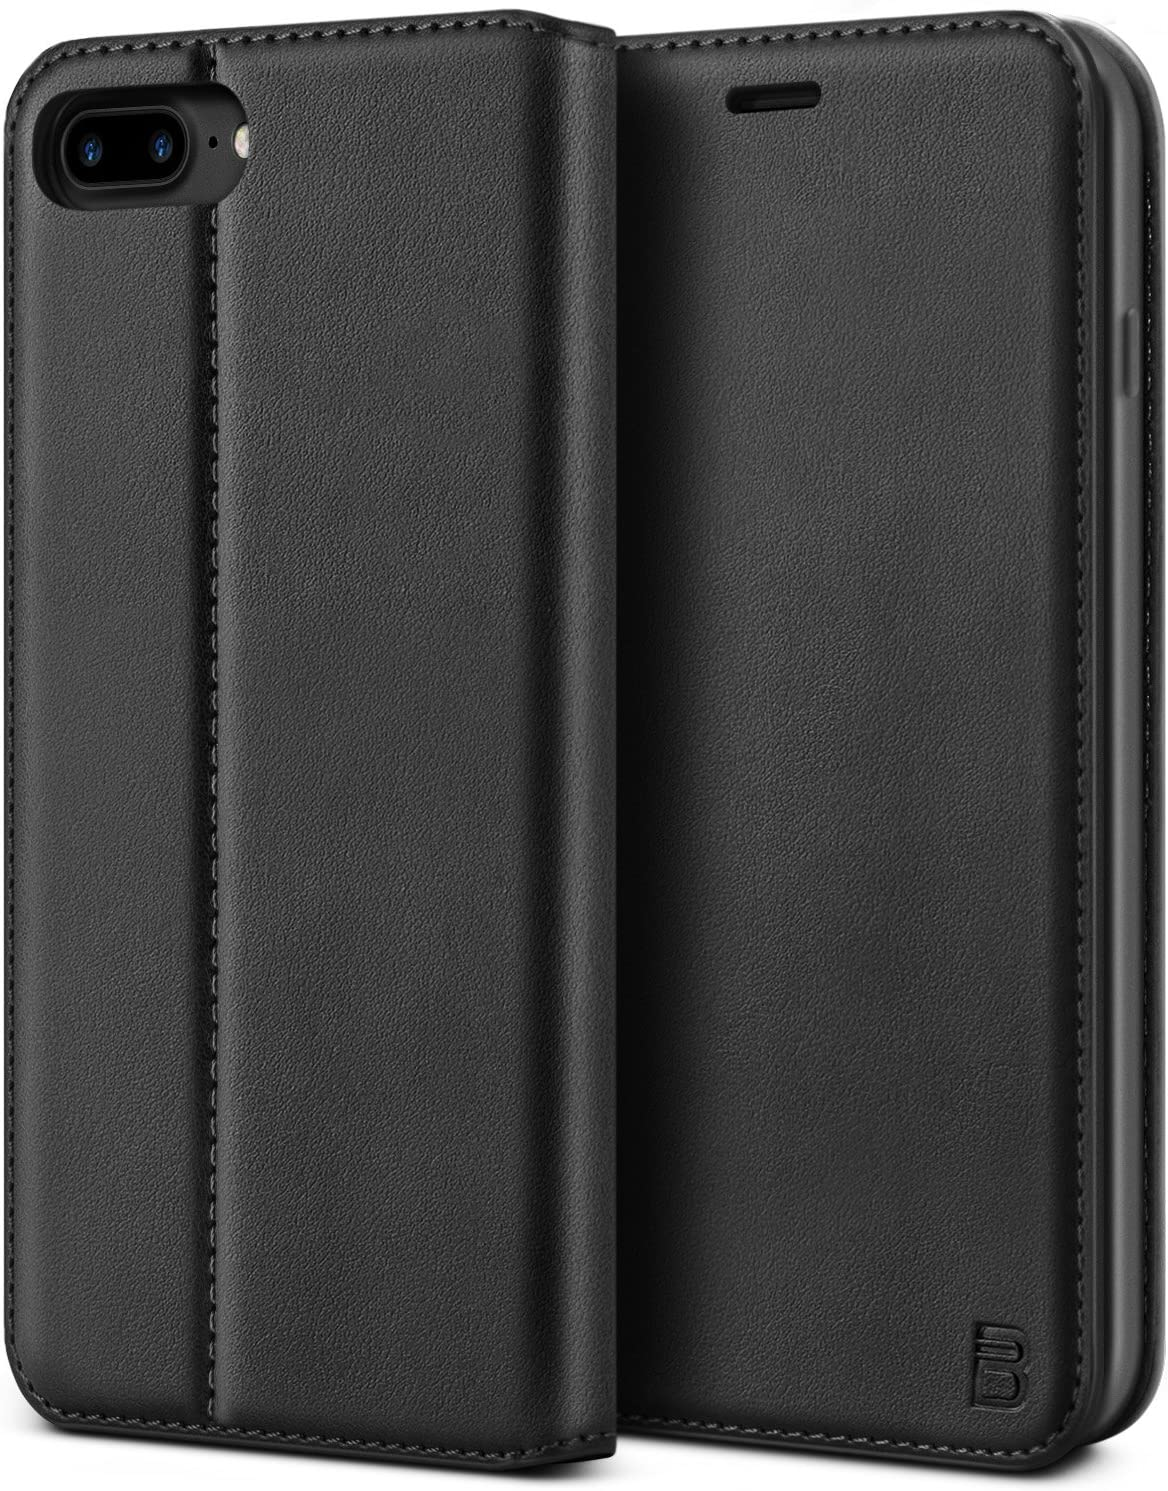 BEZ Funda iPhone 8 Plus, iPhone 7 Plus, Carcasa Compatible para iPhone 8 Plus, Libro de Cuero con Tapa y Cartera, Cover Protectora con Ranura para Tarjetas y Billetera, Cierre Magnético, Negro